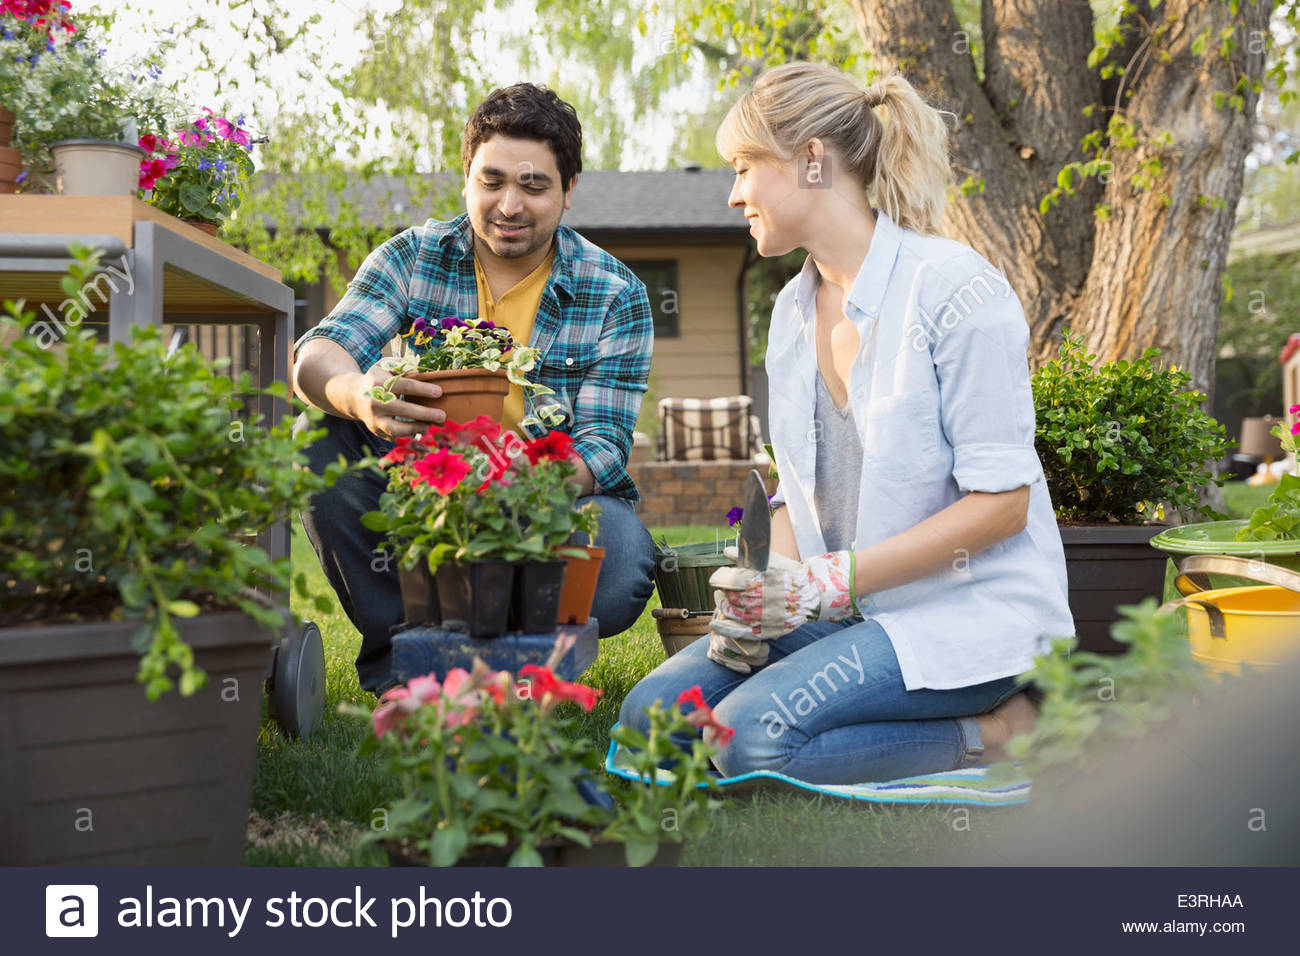 Couple planting flowers in garden - Stock Image